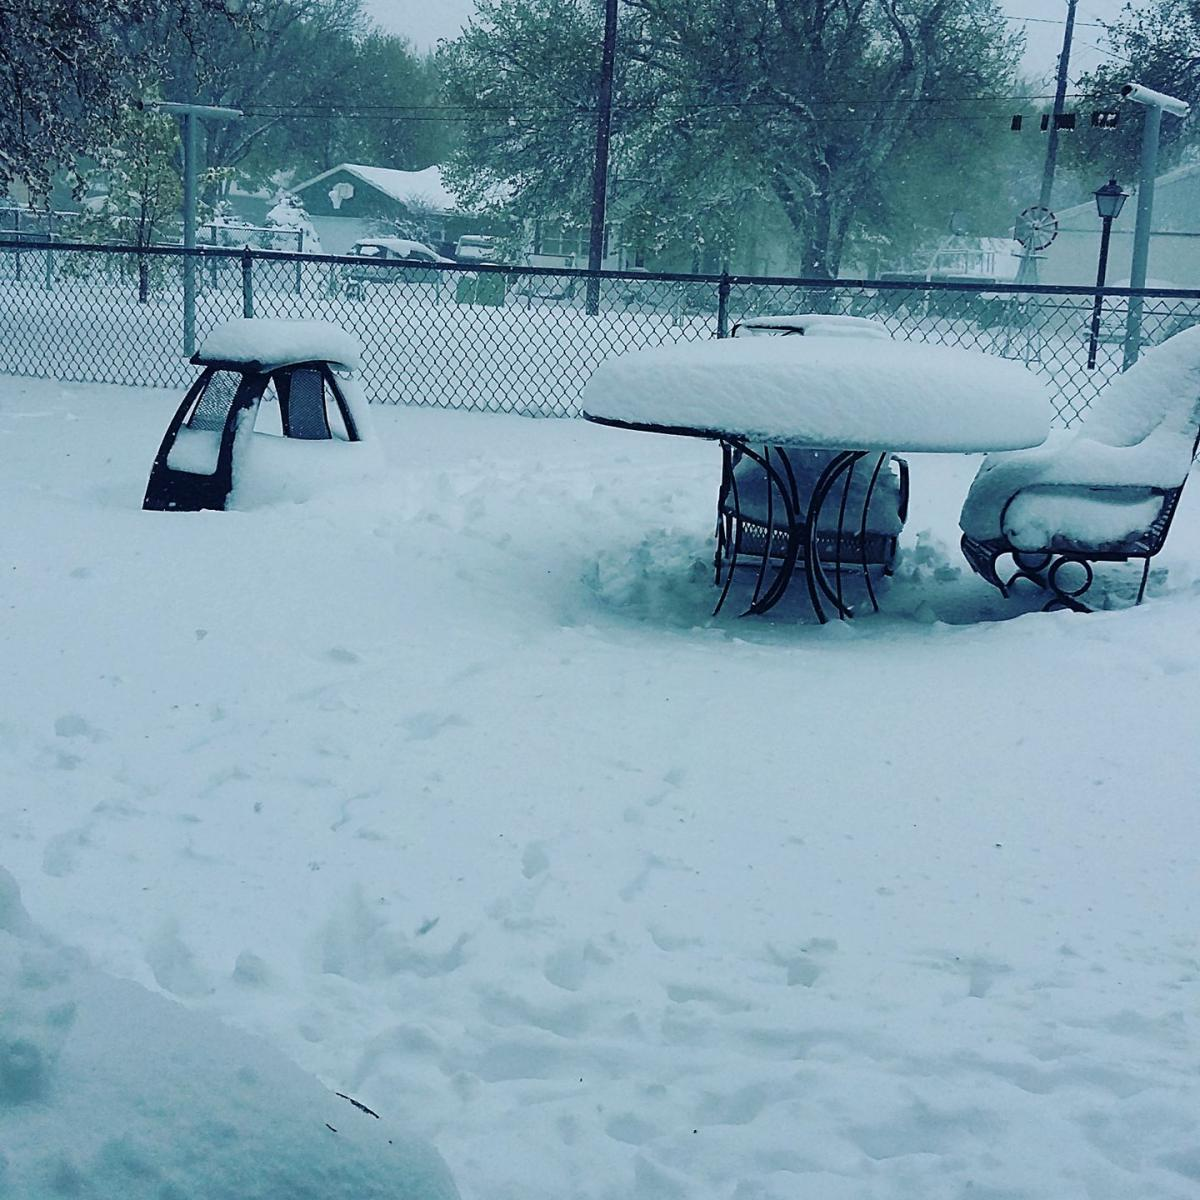 Kansas gove county grinnell - Colby Ks Courtesy Samantha Critchfield